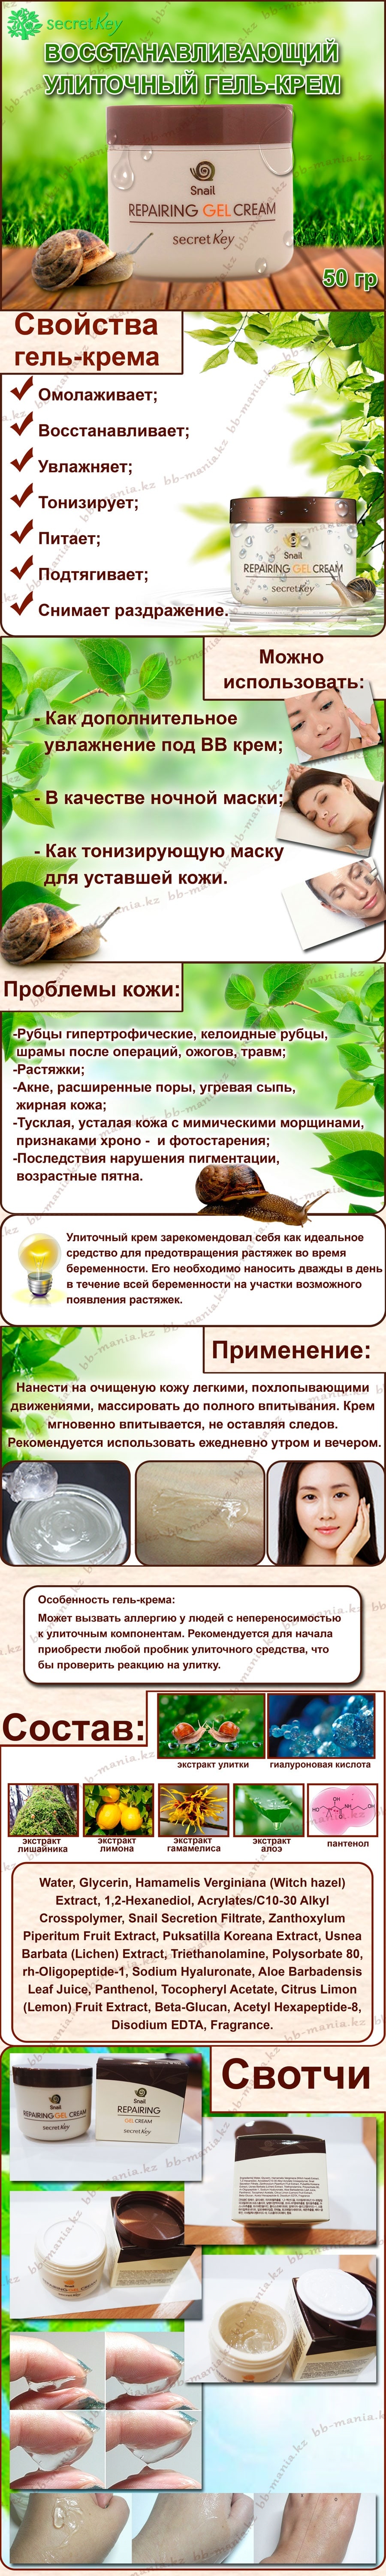 snail-repairing-gel-cream-secret-key-min